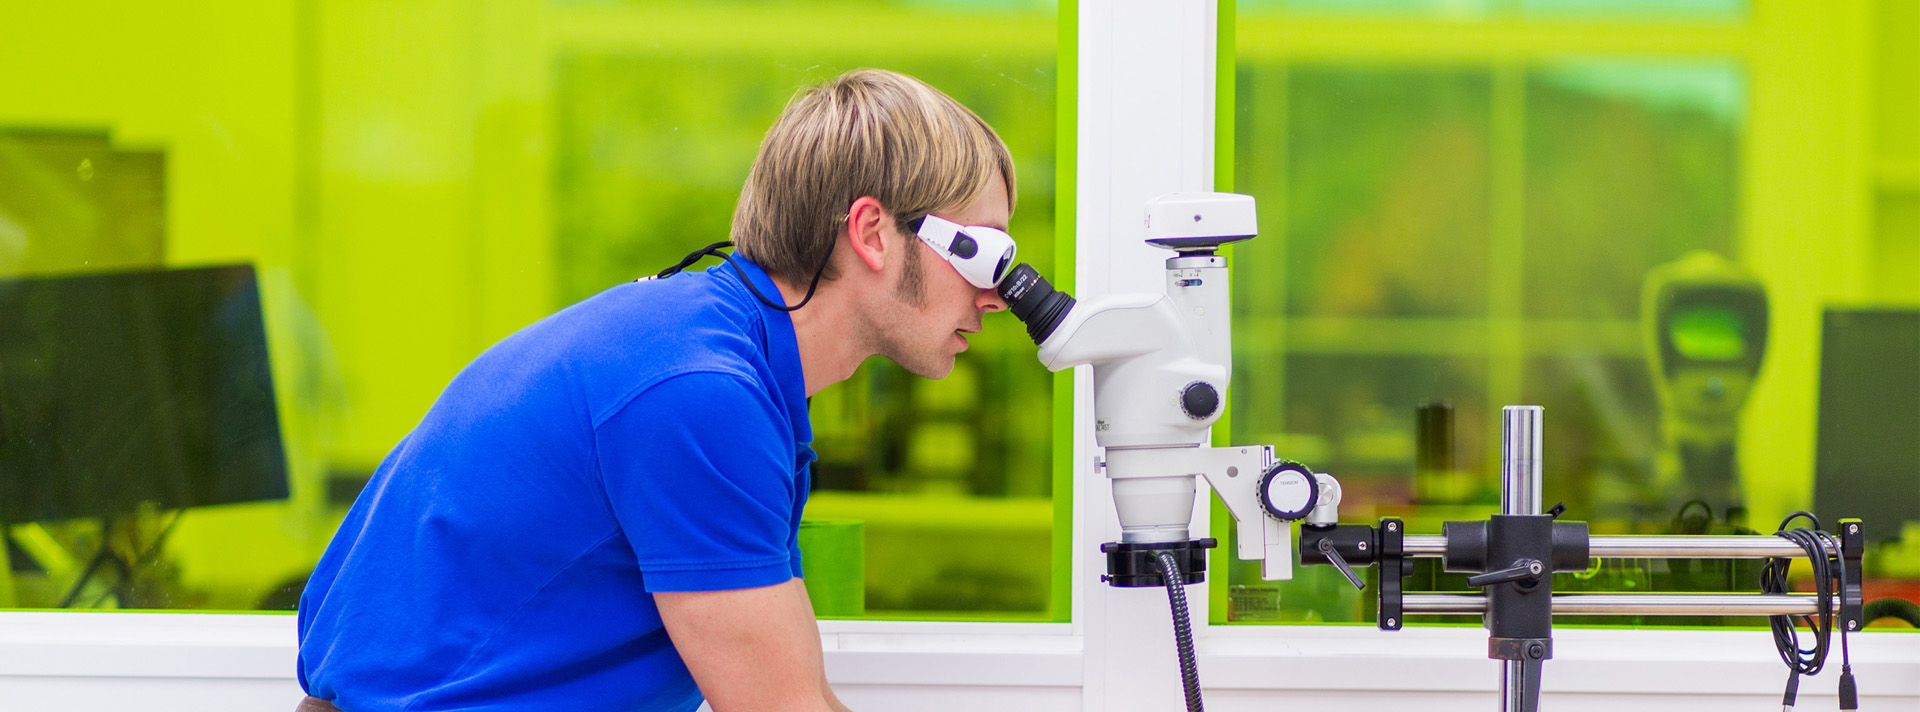 Cadence employee looking through microscope